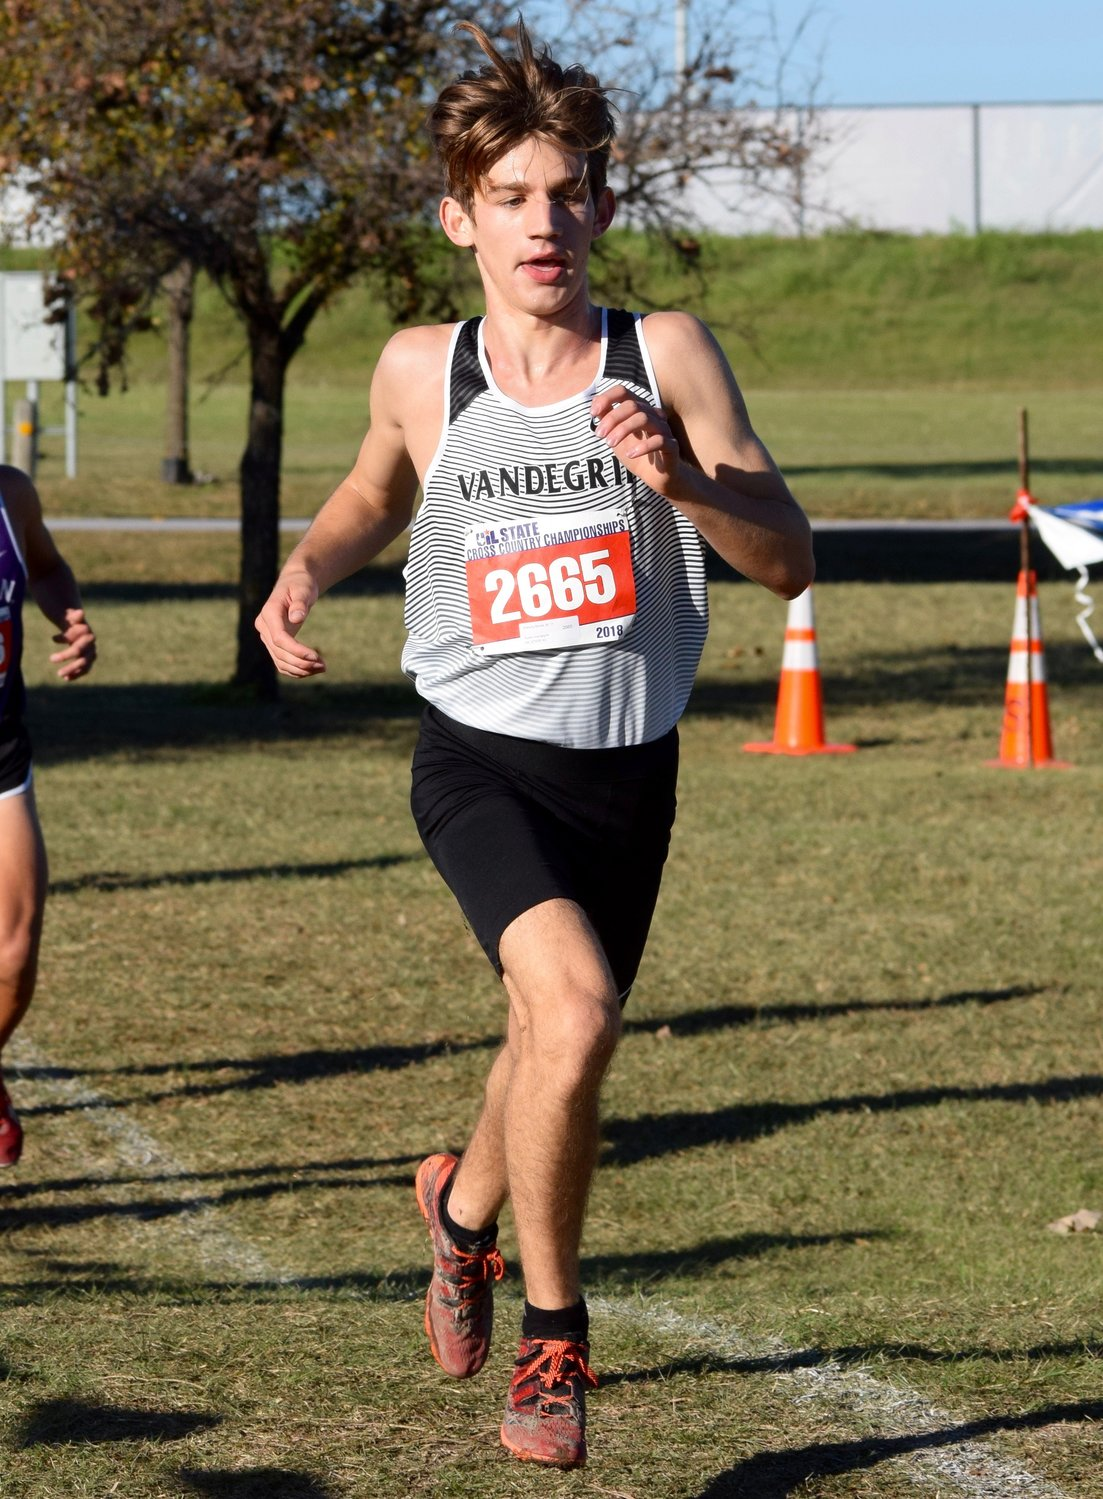 Vandegrift junior Anthony Monte finished 19th with a time of 15:26.12 at the State Cross Country meet Saturday in Round Rock.